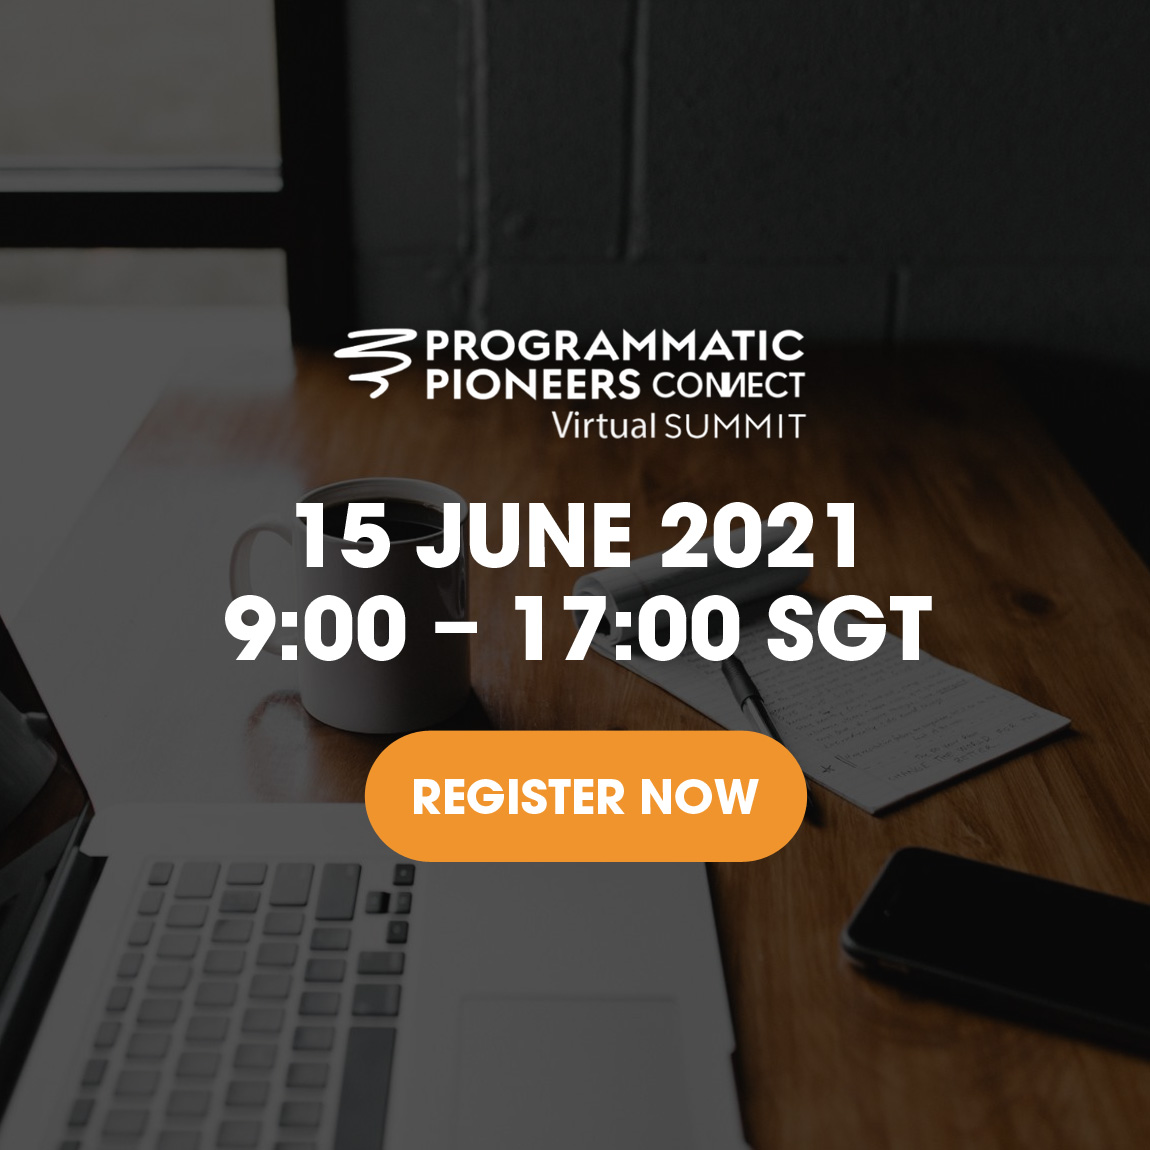 Programmatic Pioneers Connect